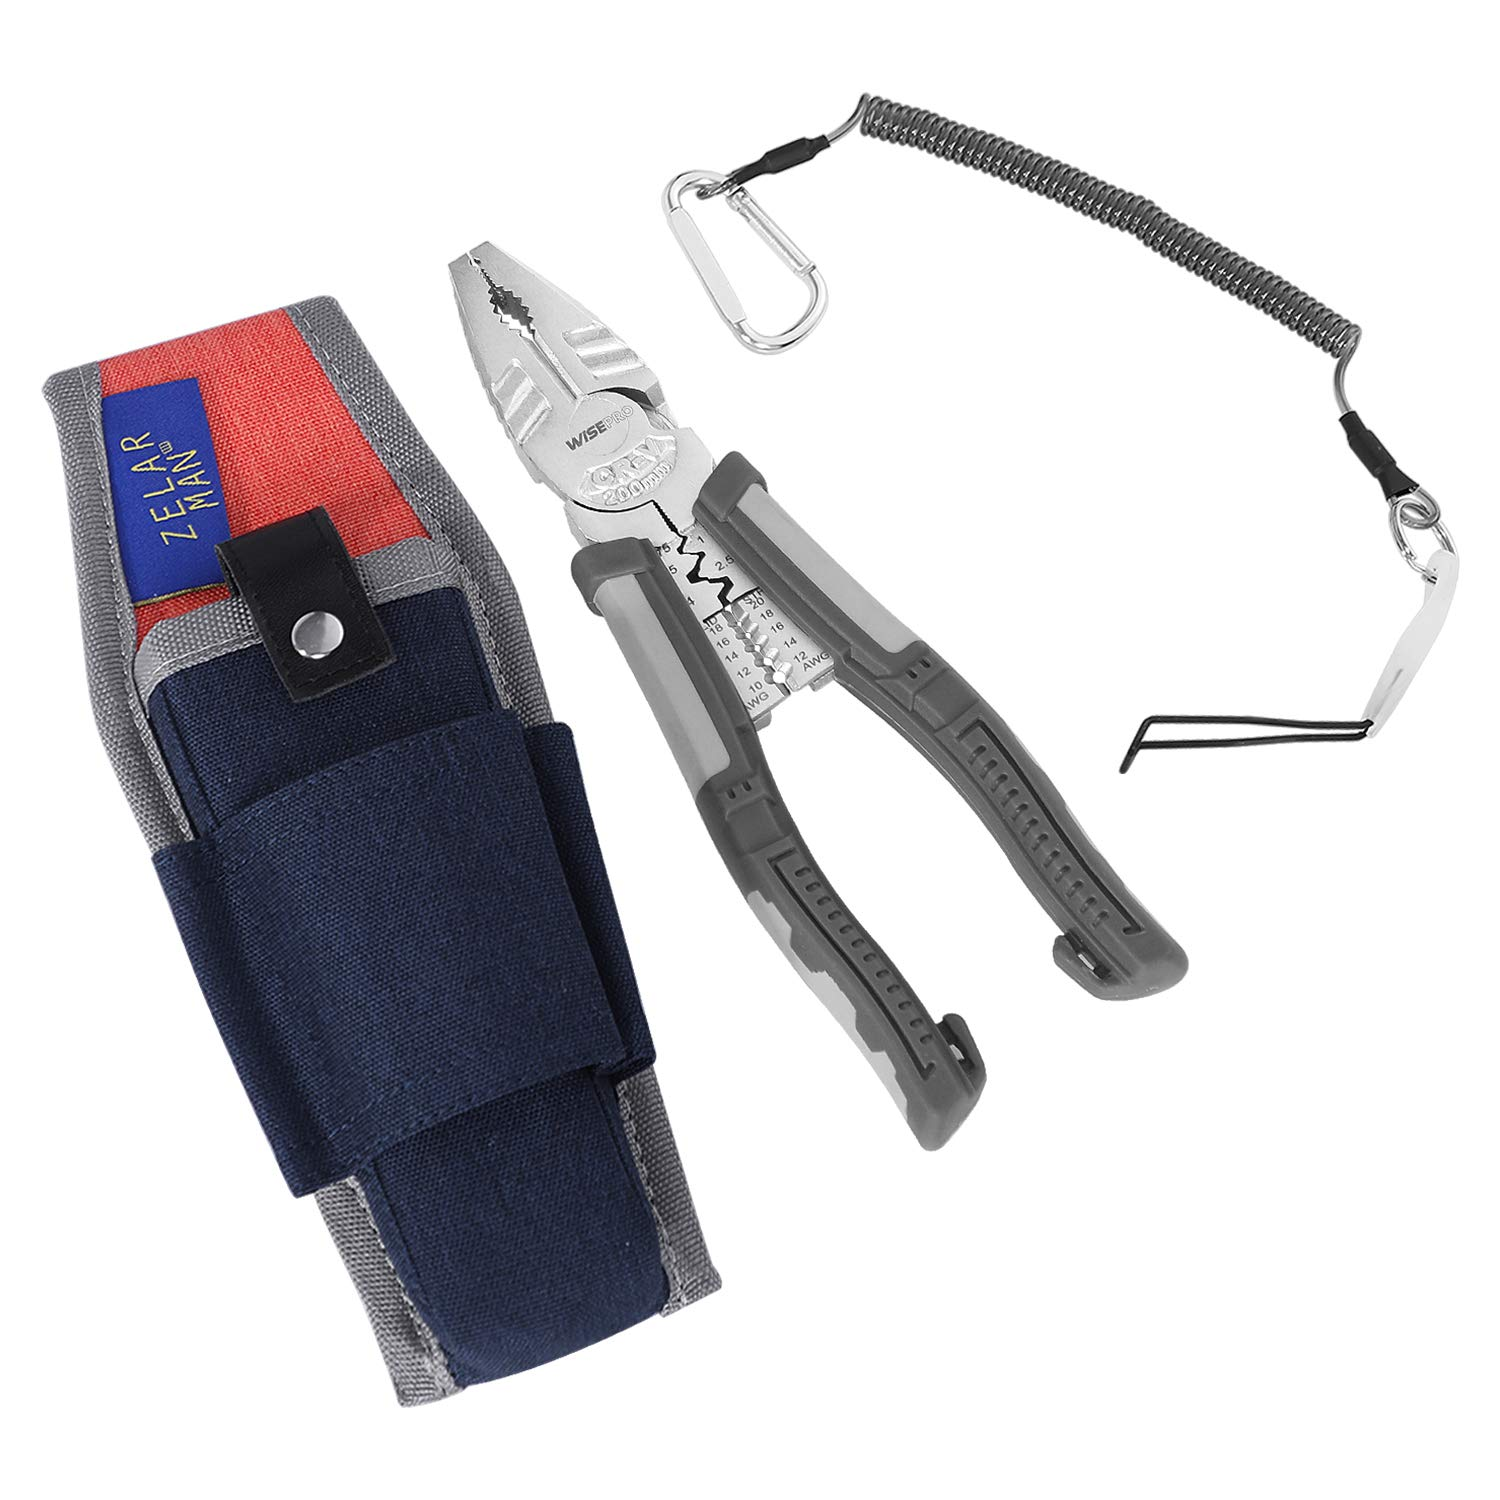 Lineman's Pliers Combination Pliers for Cutting, Stripping, Crimping, 8 Inch Screw Extraction Pliers with Plier Holder & Lanyard